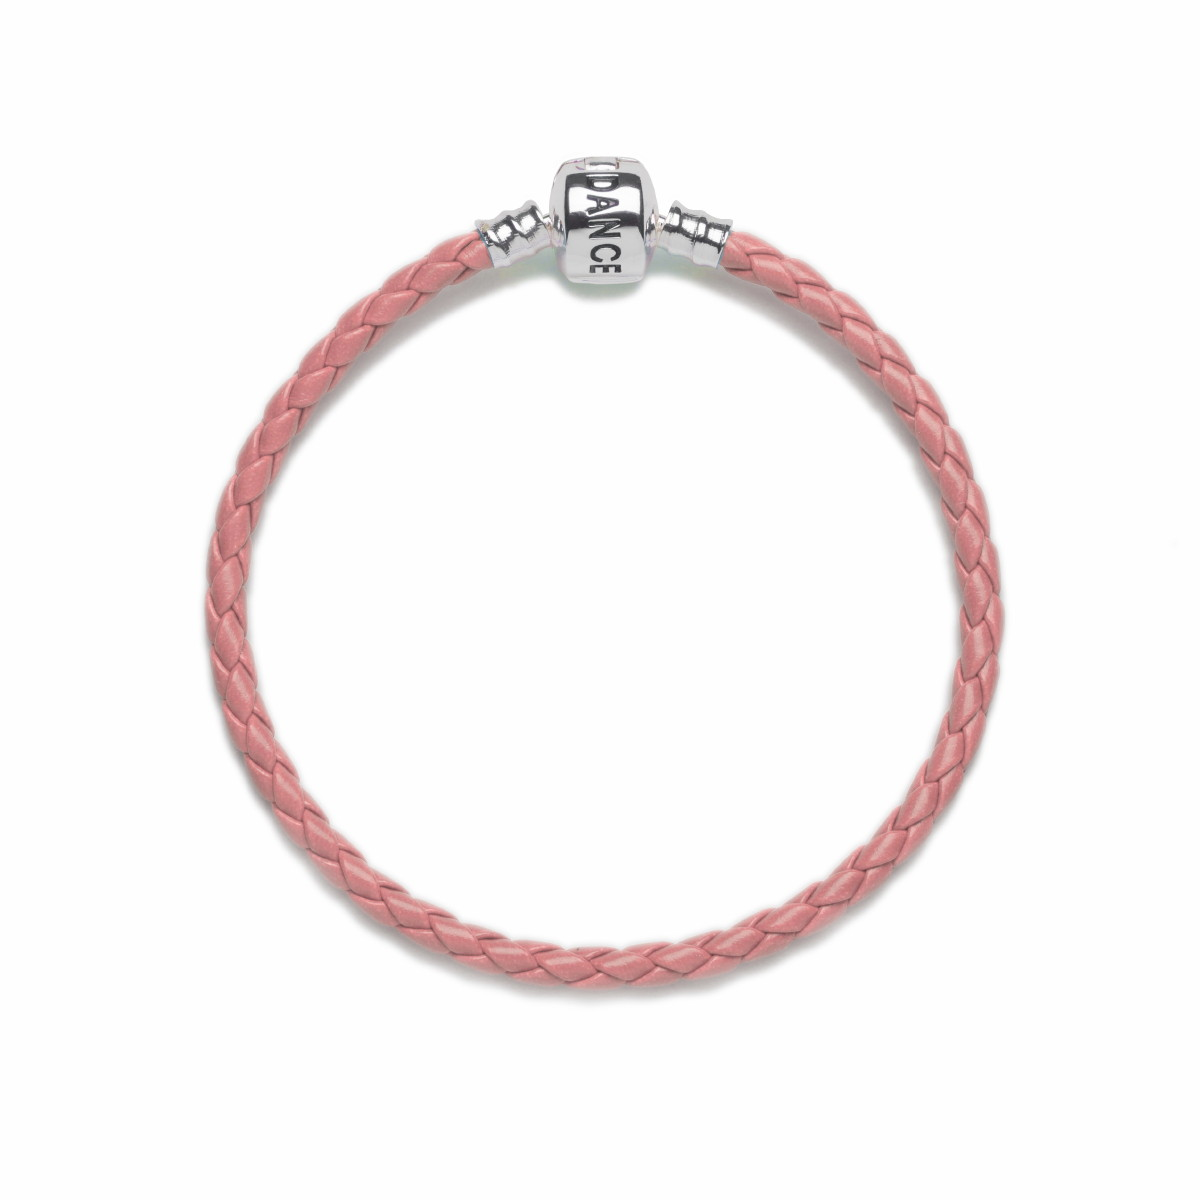 Official Riverdance20 Coral Leather Style Charm Bracelet